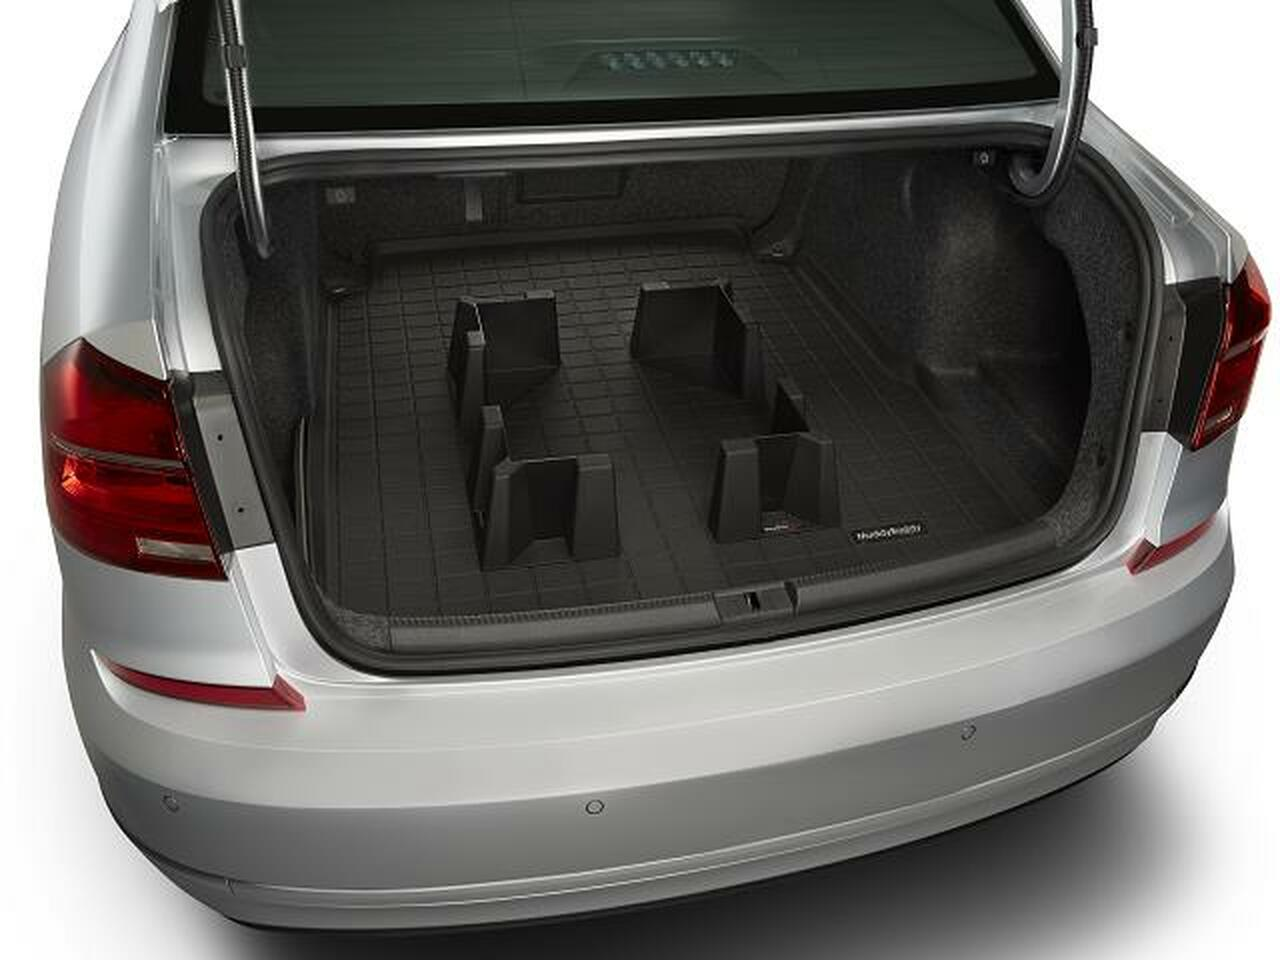 2018-2022 VW Tiguan Rubber Cargo Tray - Containment System Only